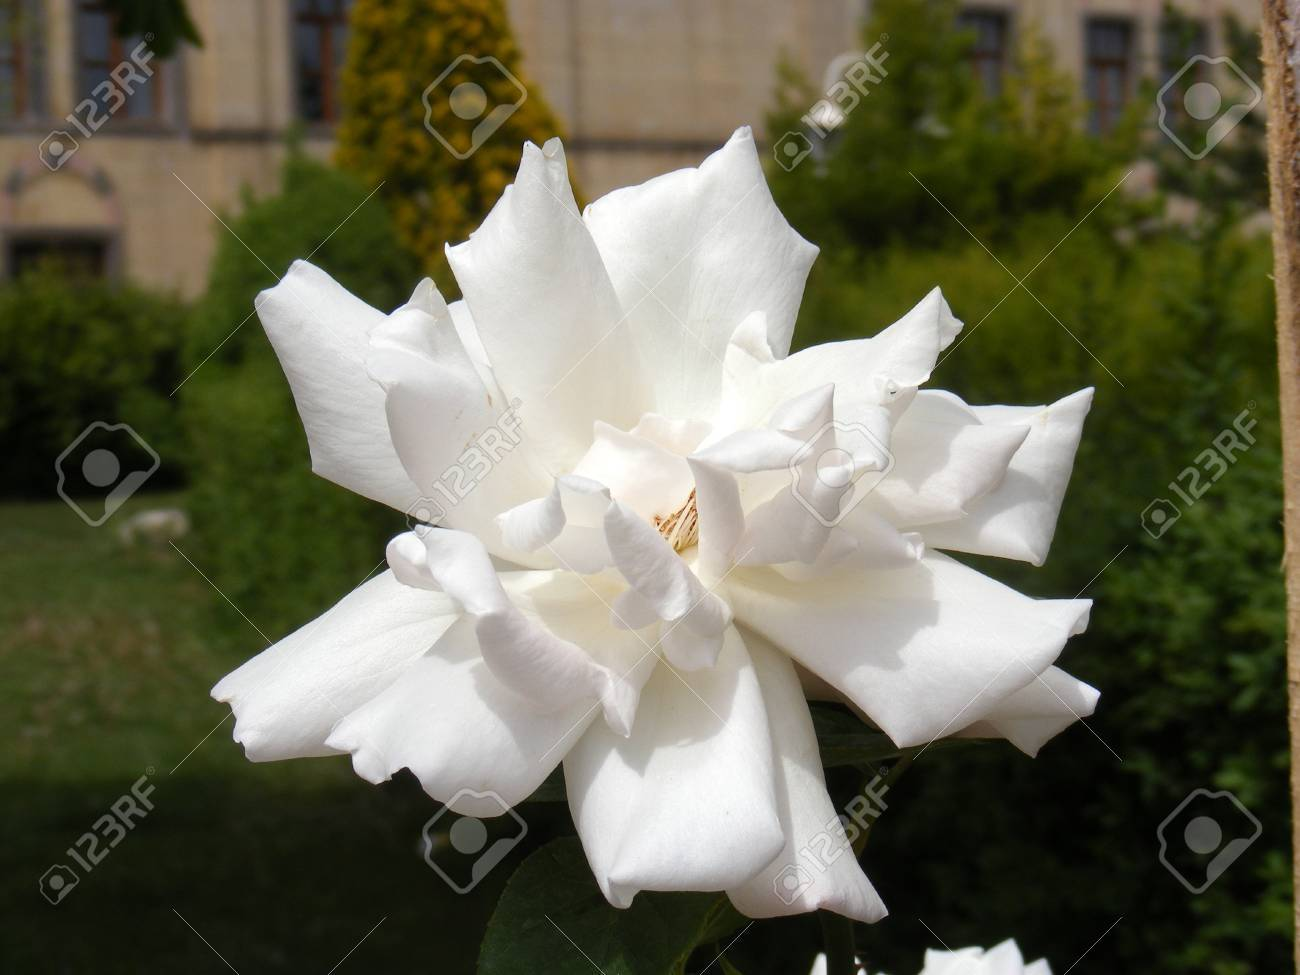 Pictures Of White Rose Flowers Pictures Of The Most Beautiful